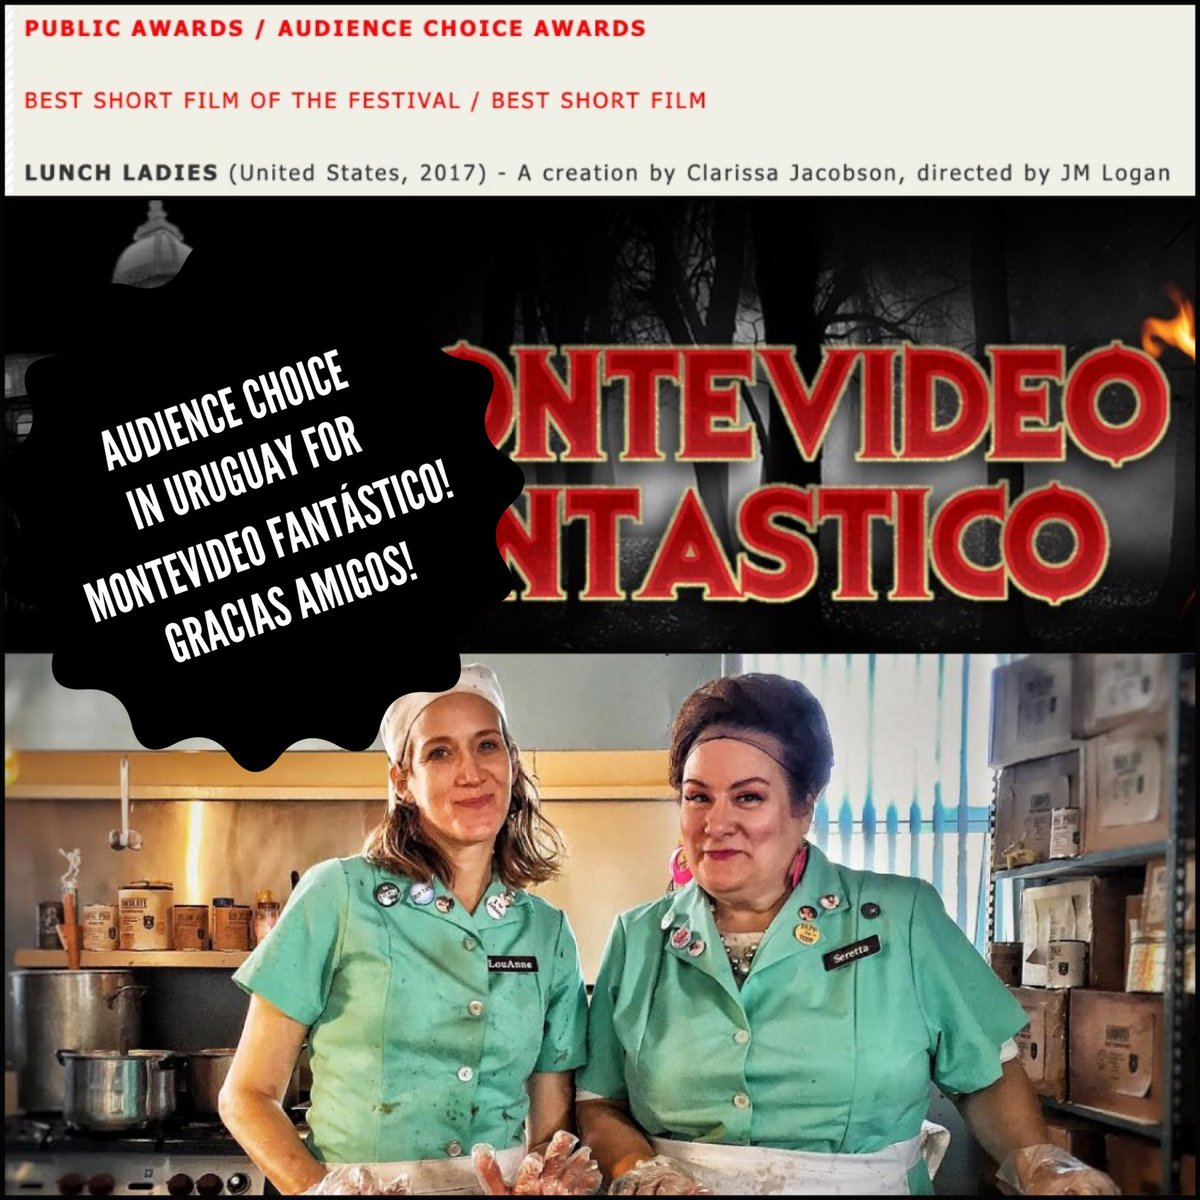 Gracias amigos!  Thank you all u sick and twisted Uruguayans for giving us the Audience Choice Best Short Film win at Montevideo Fantástico Fest! @MontevideoFan #lunchladies #lunchladiesmovie #johnnydepp #montevideo #uruguay #montevideofantastico